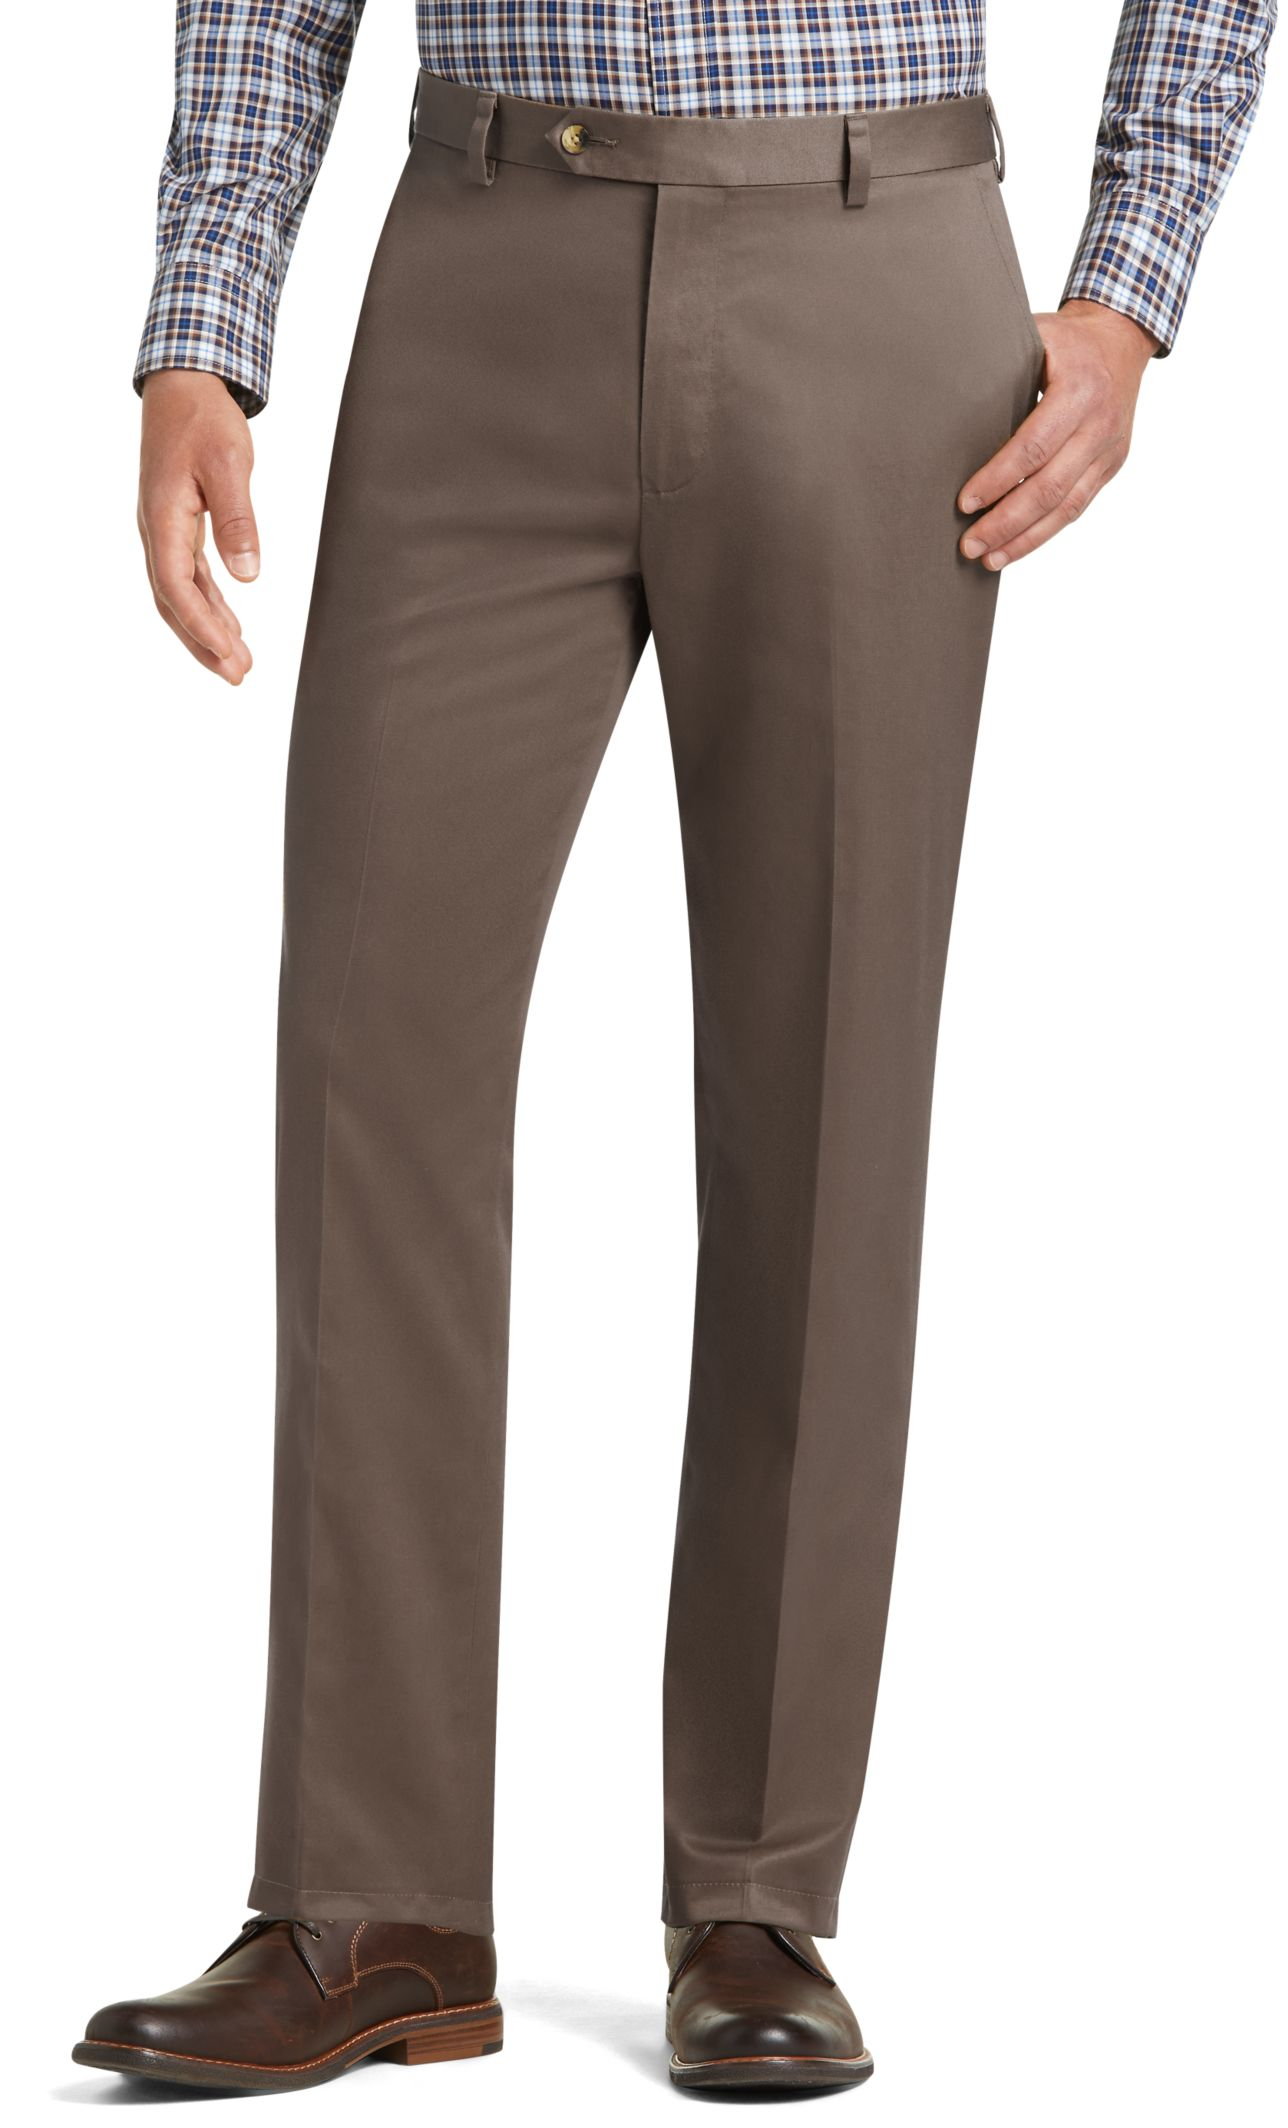 Men&39s Wrinkle Free Khakis &amp Twill Pants | Traveler Collection